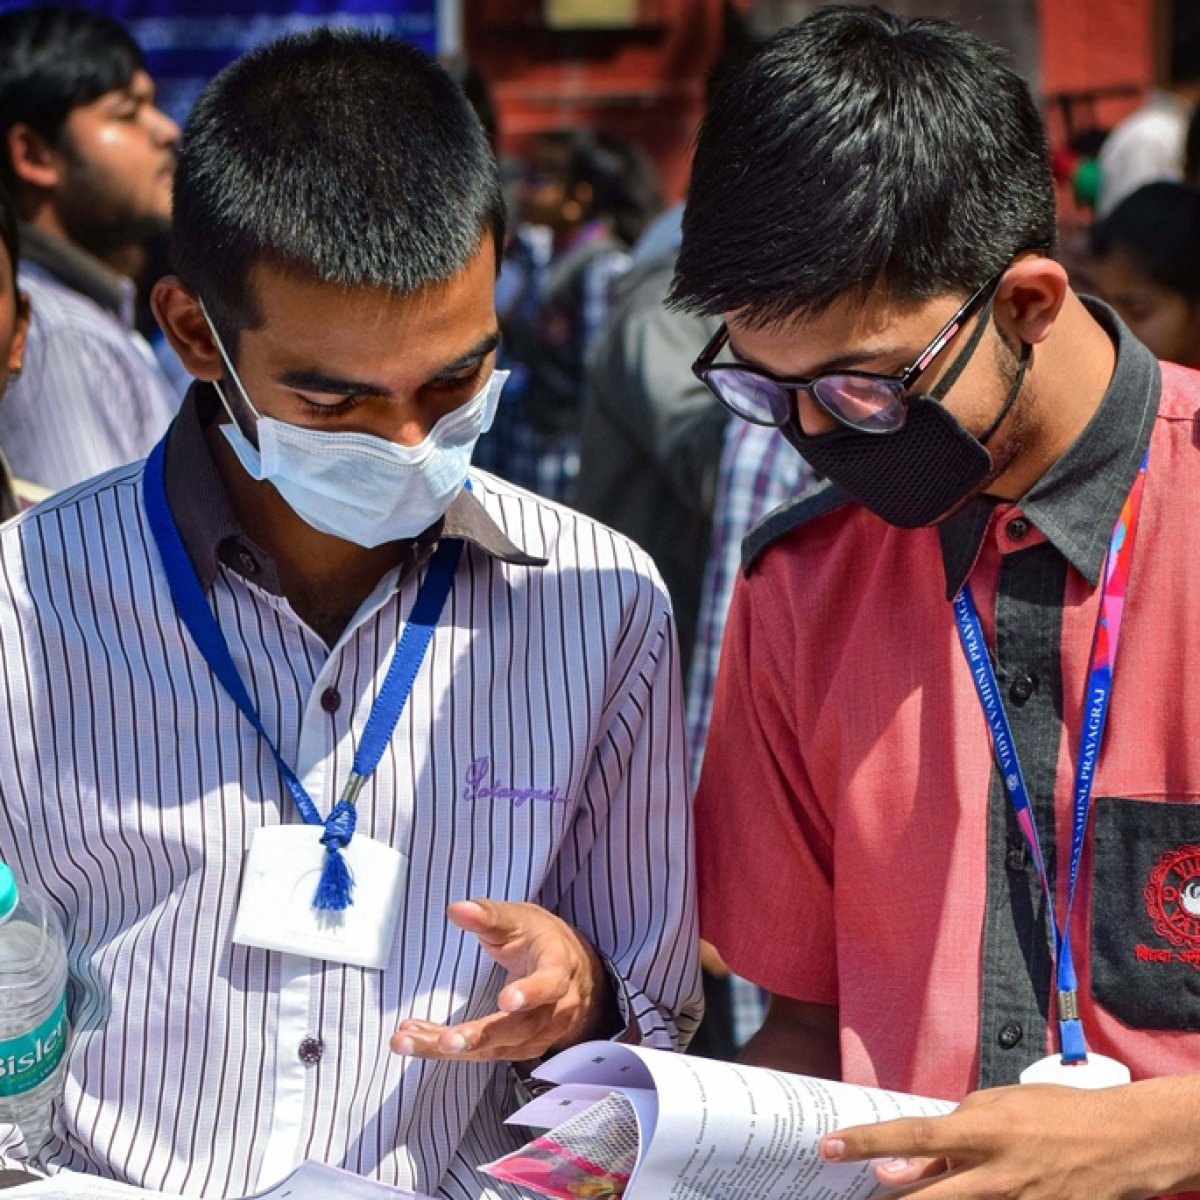 Latest coronavirus update: All UP govt school students of classes 1 to 8 to get promoted without exams